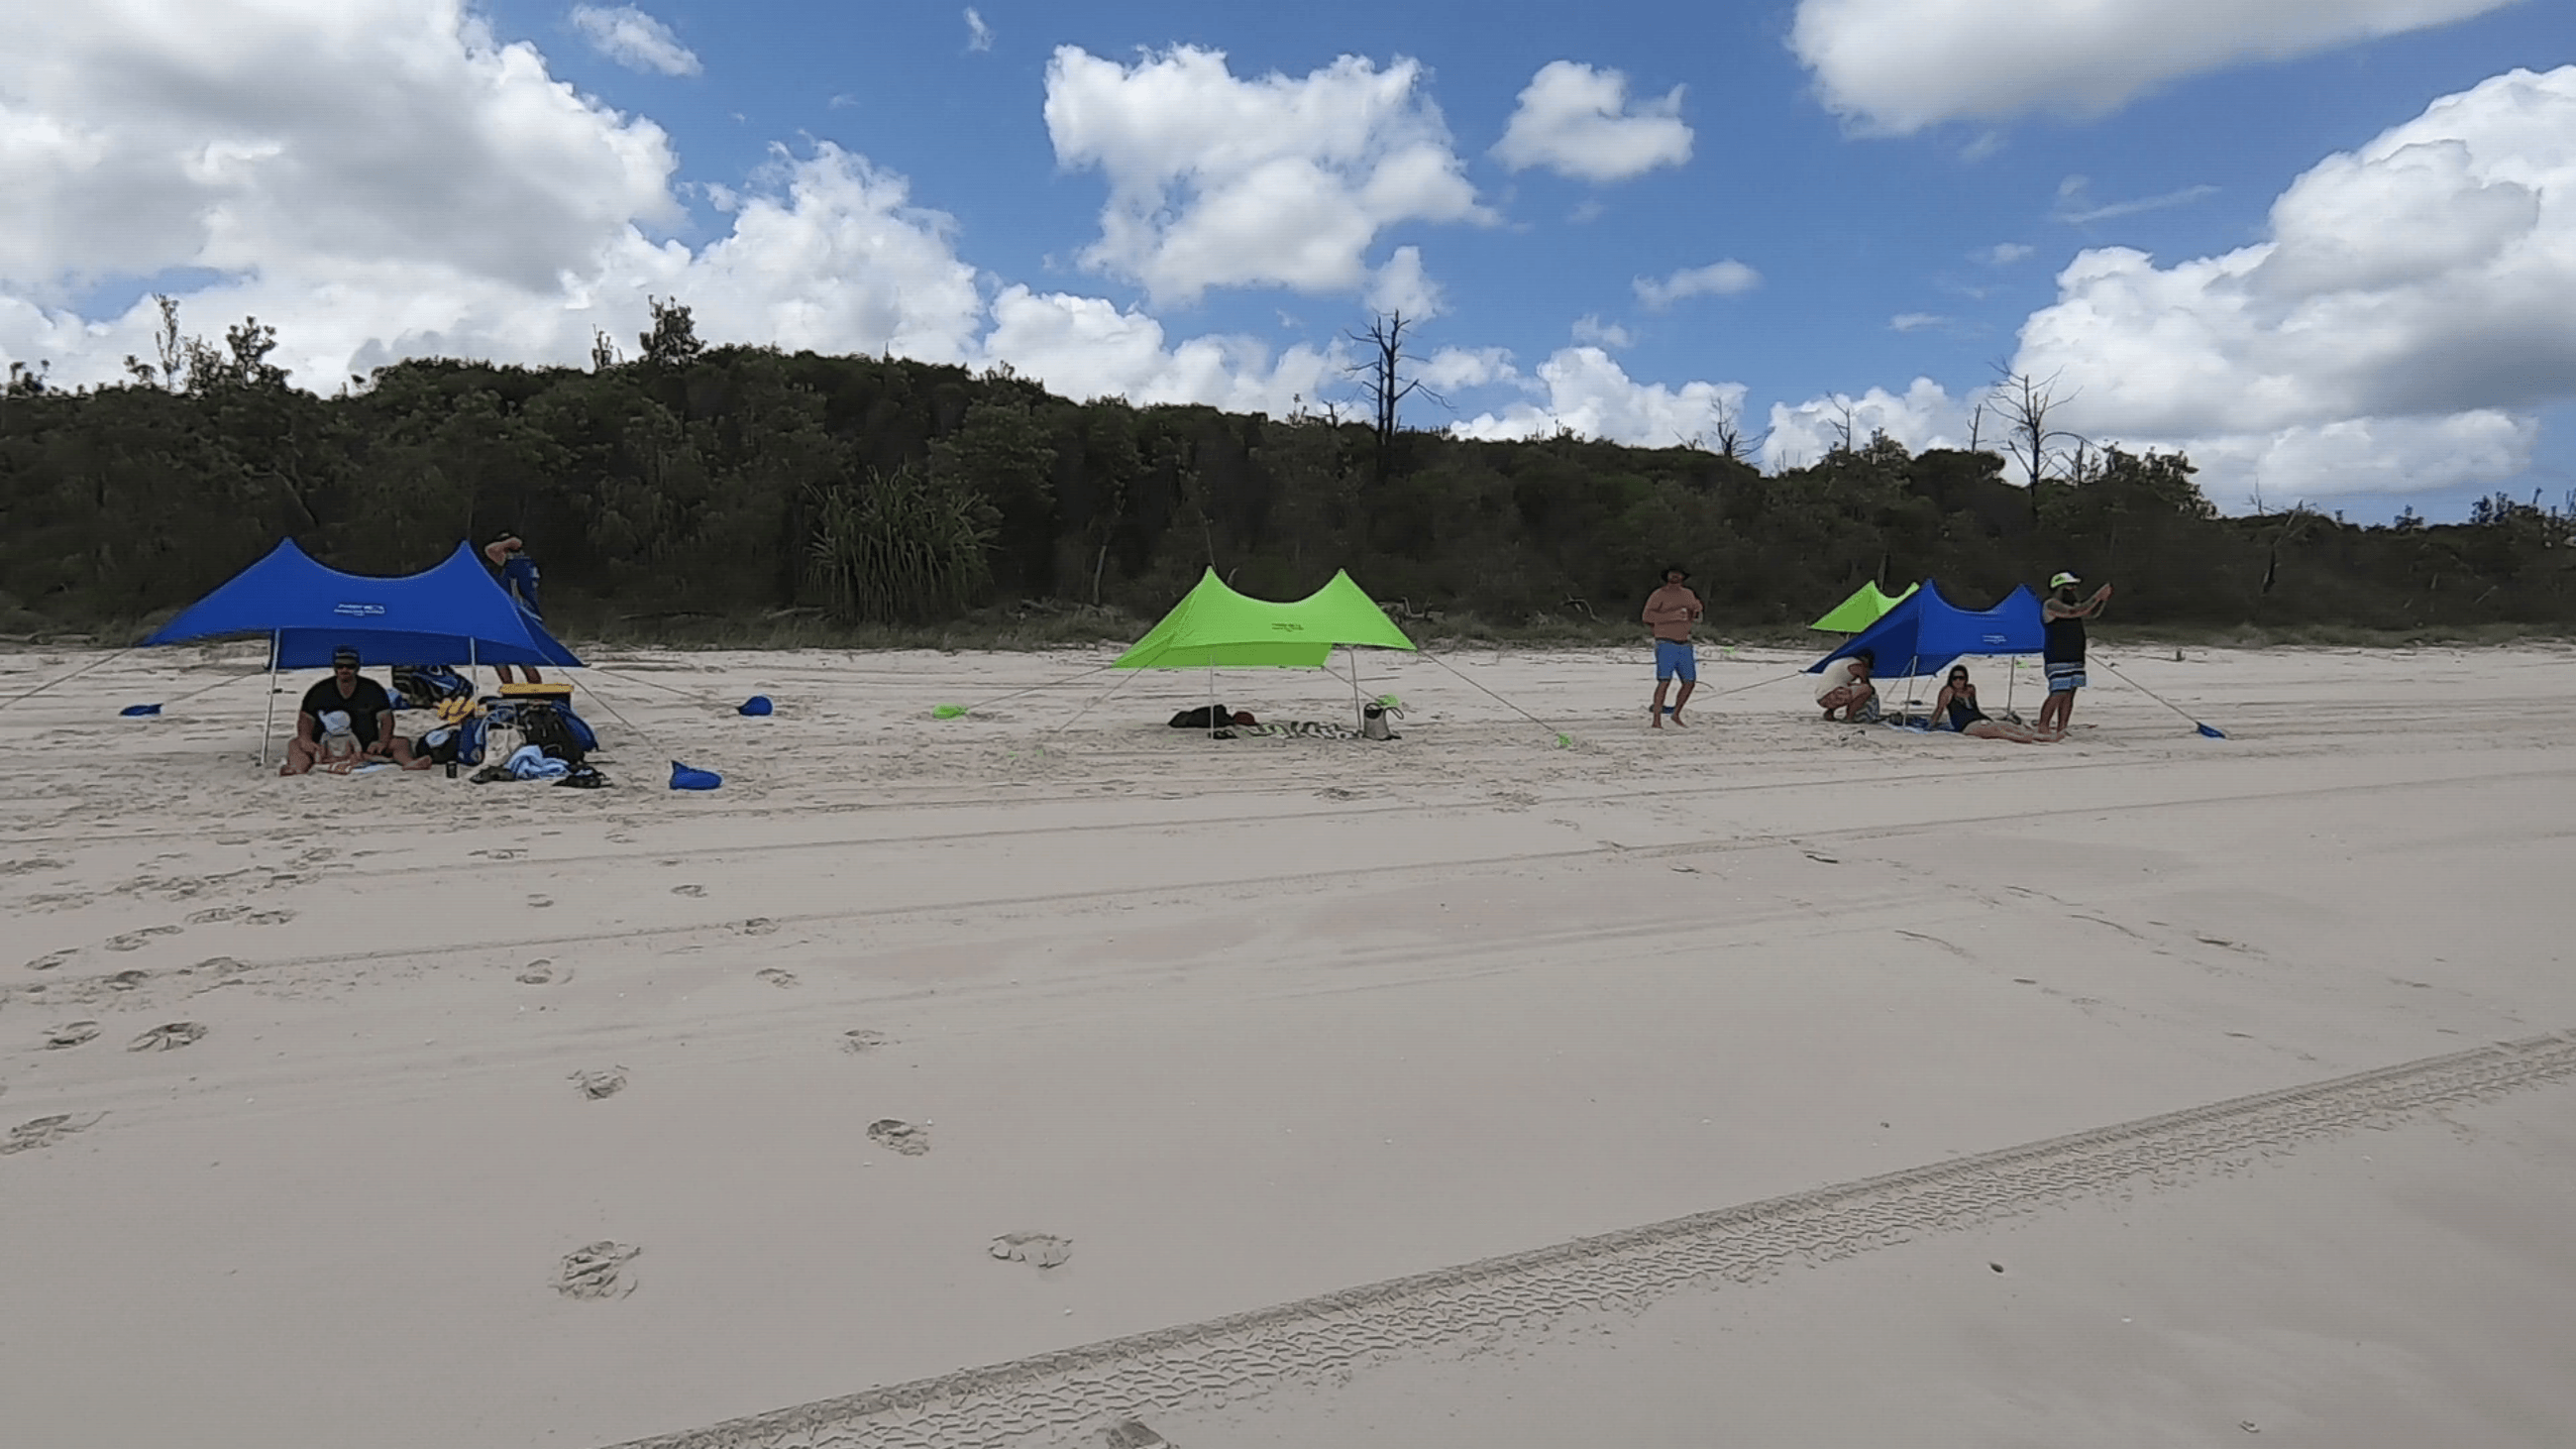 Fraser Island tour - K'gari Ocean Safari - relax on the beach and enjoy the sunshine